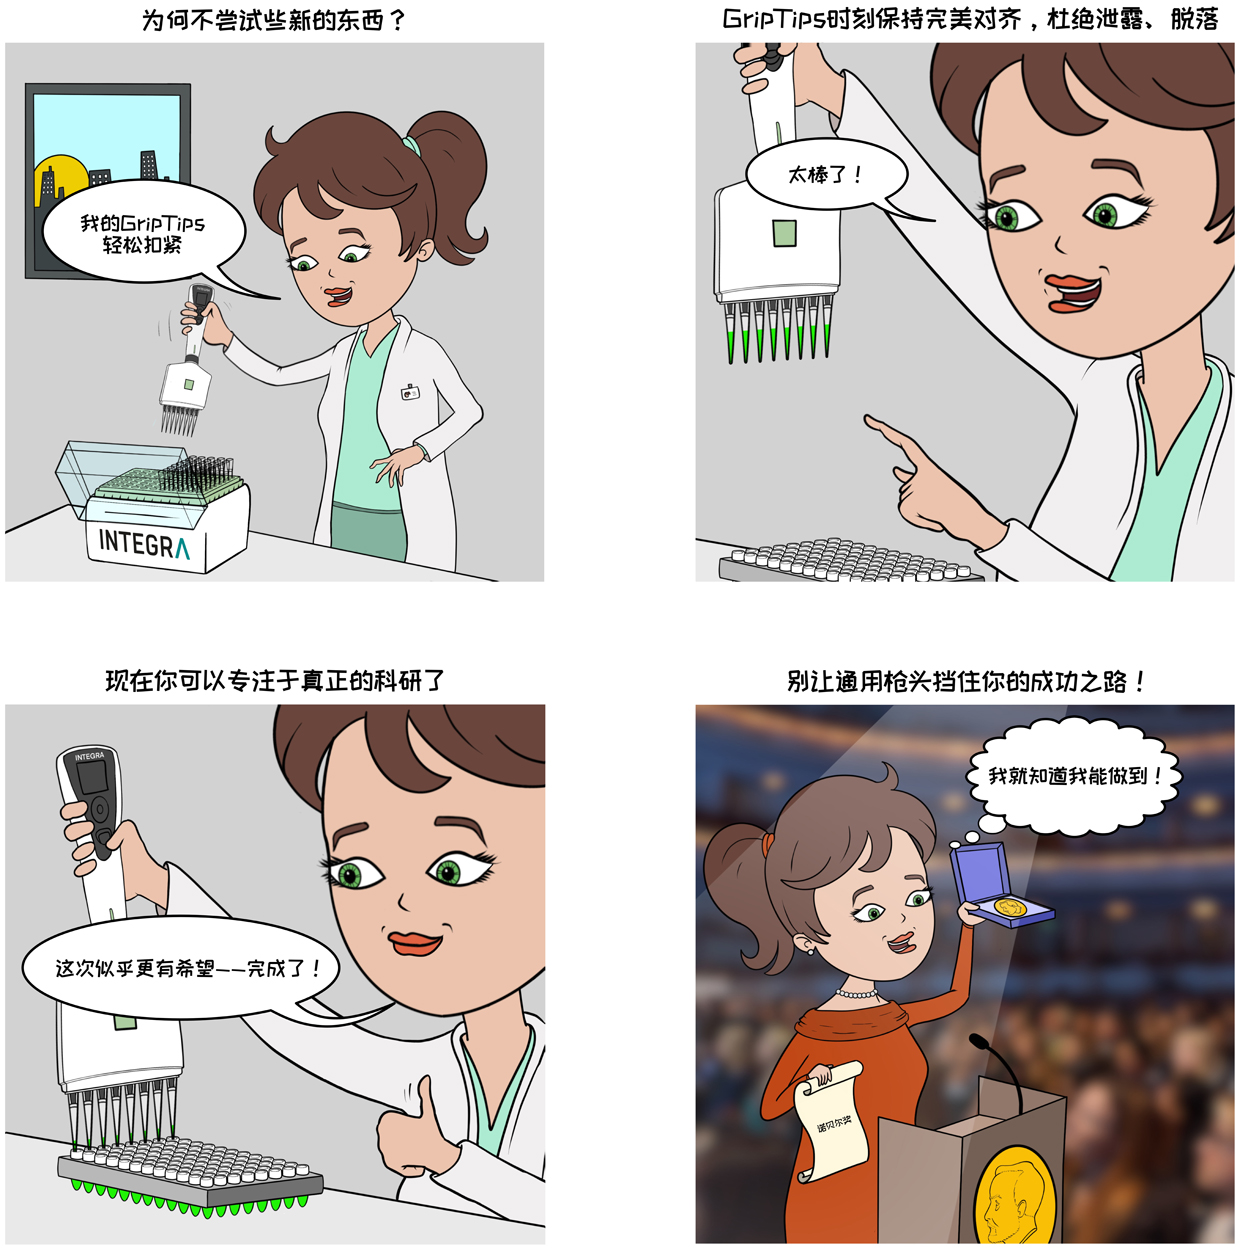 Cartoon of a scientist working with GripTip pipette tips and winning the nobel prize